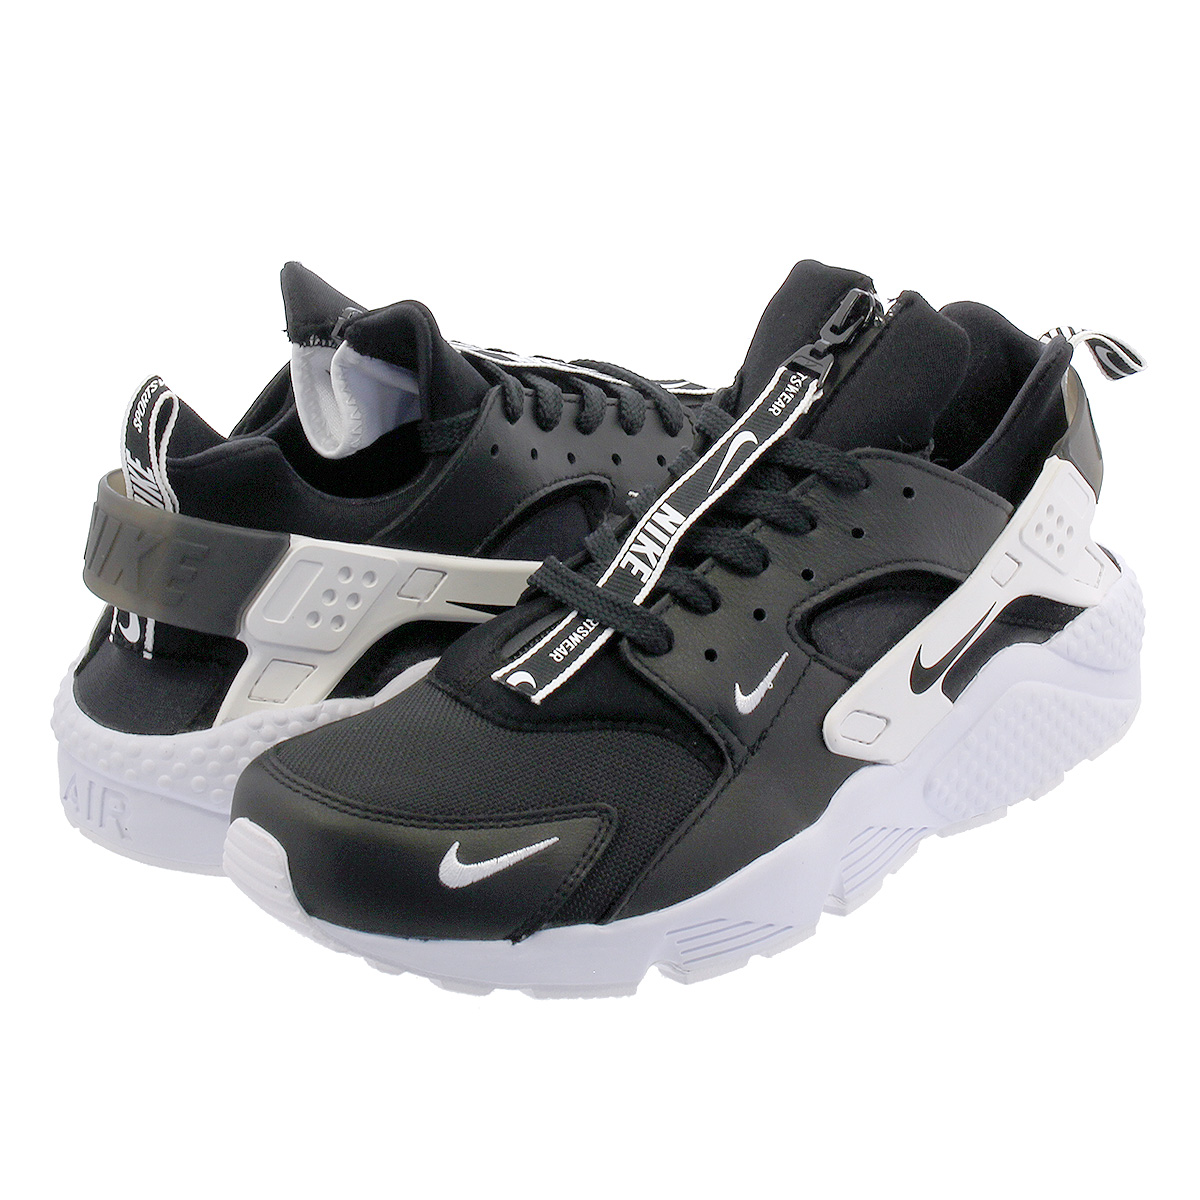 5cae7bd69 NIKE AIR HUARACHE RUN PRM ZIP ナイキエアハラチランプレミアムジップ BLACK/BLACK/WHITE ...